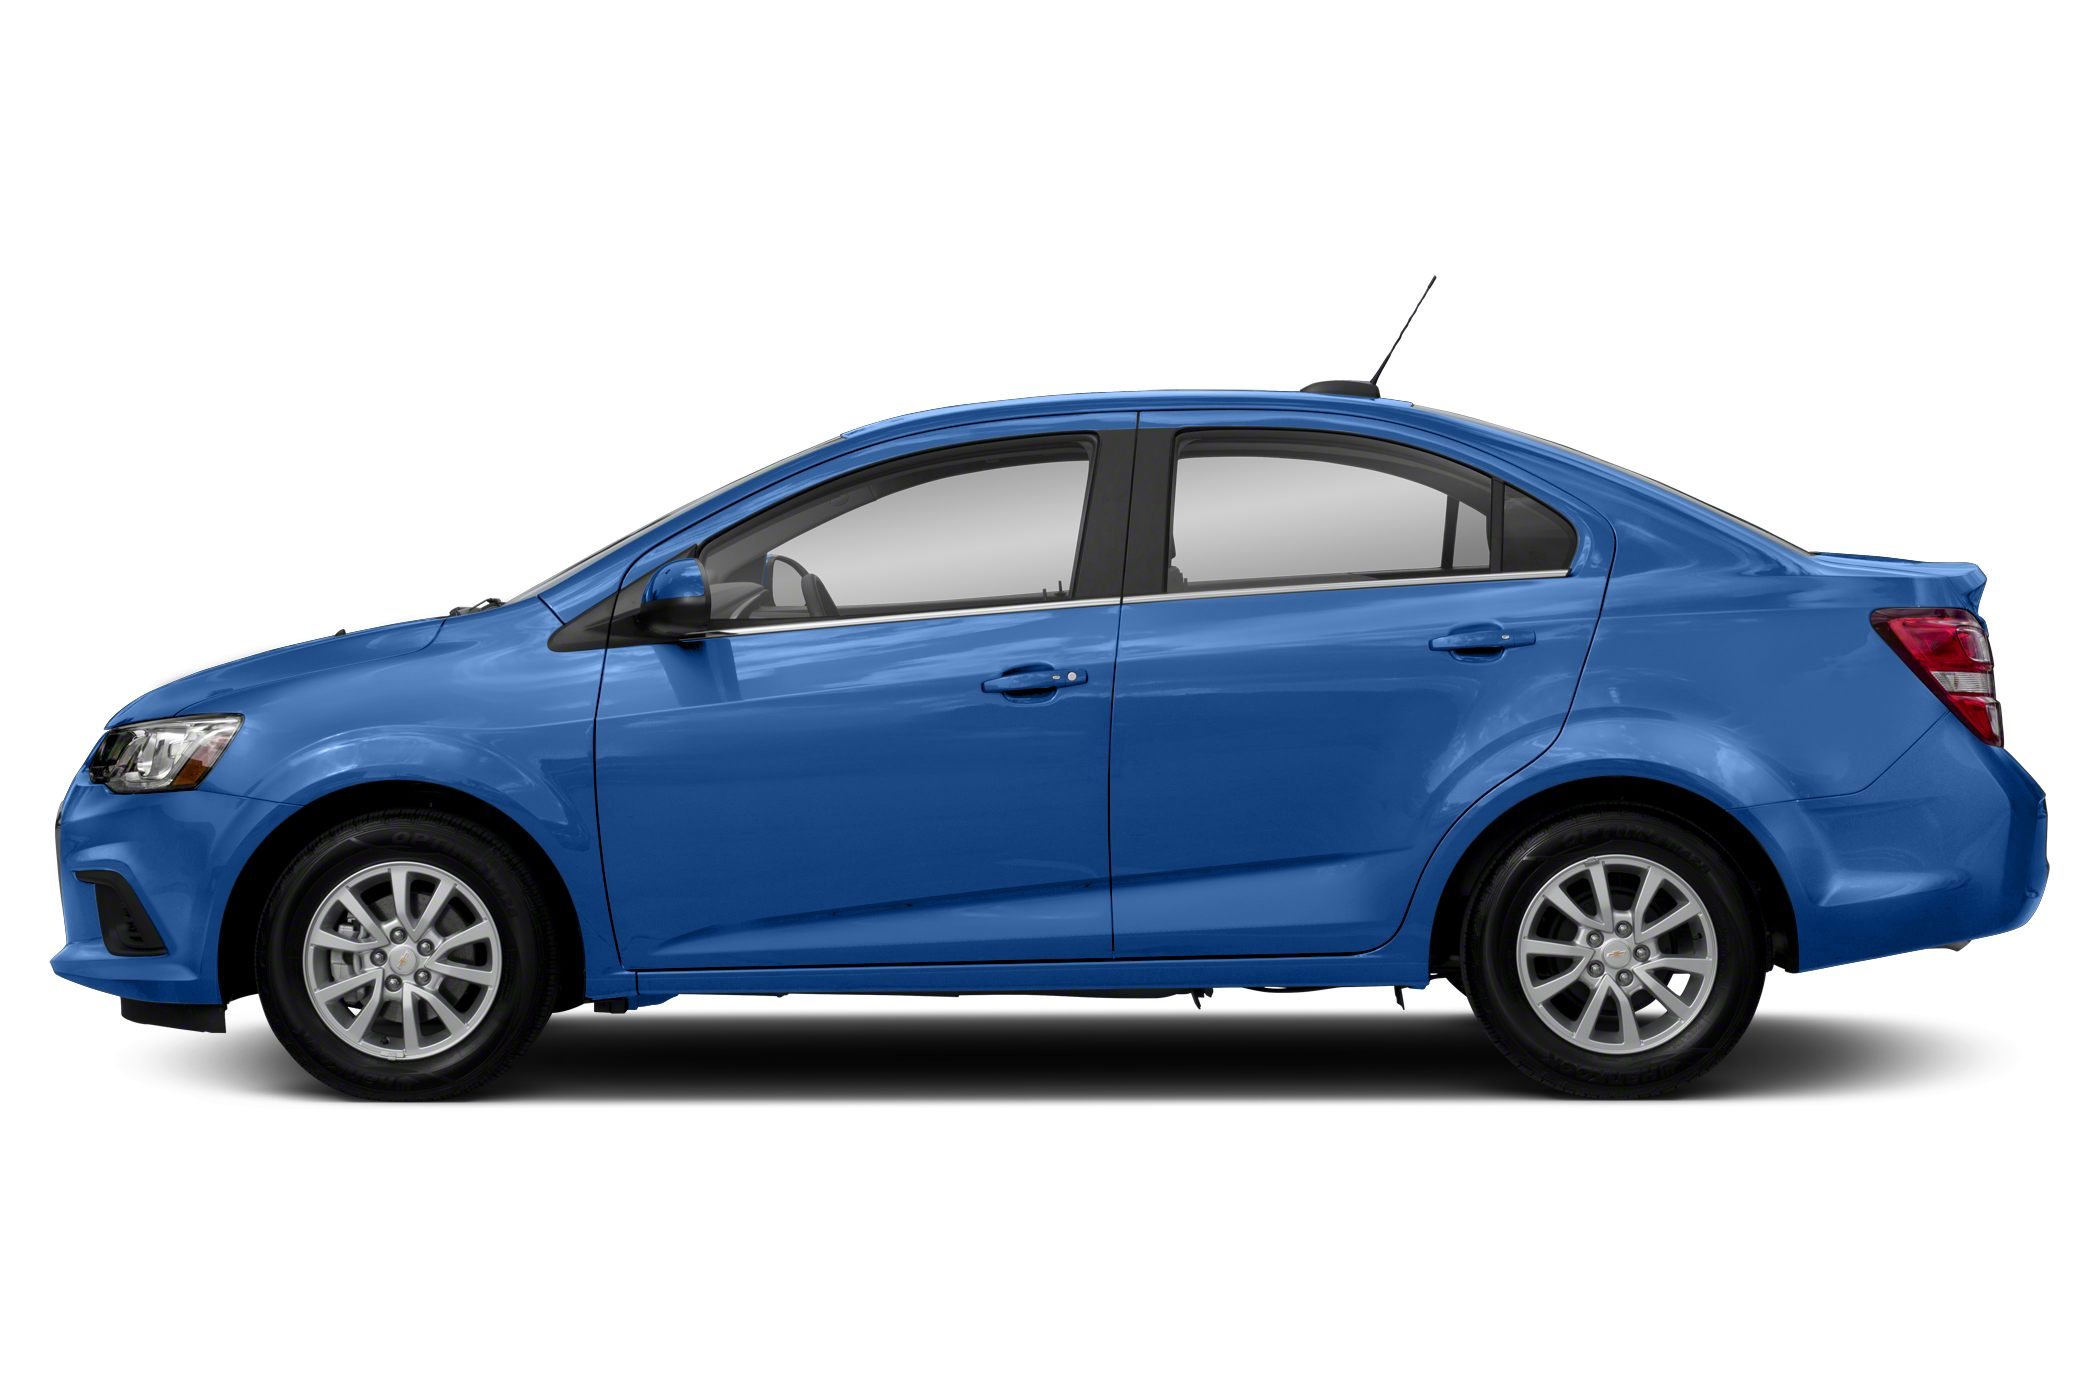 2018 Chevrolet Sonic Price >> 2017 Chevrolet Sonic Styles Features Highlights